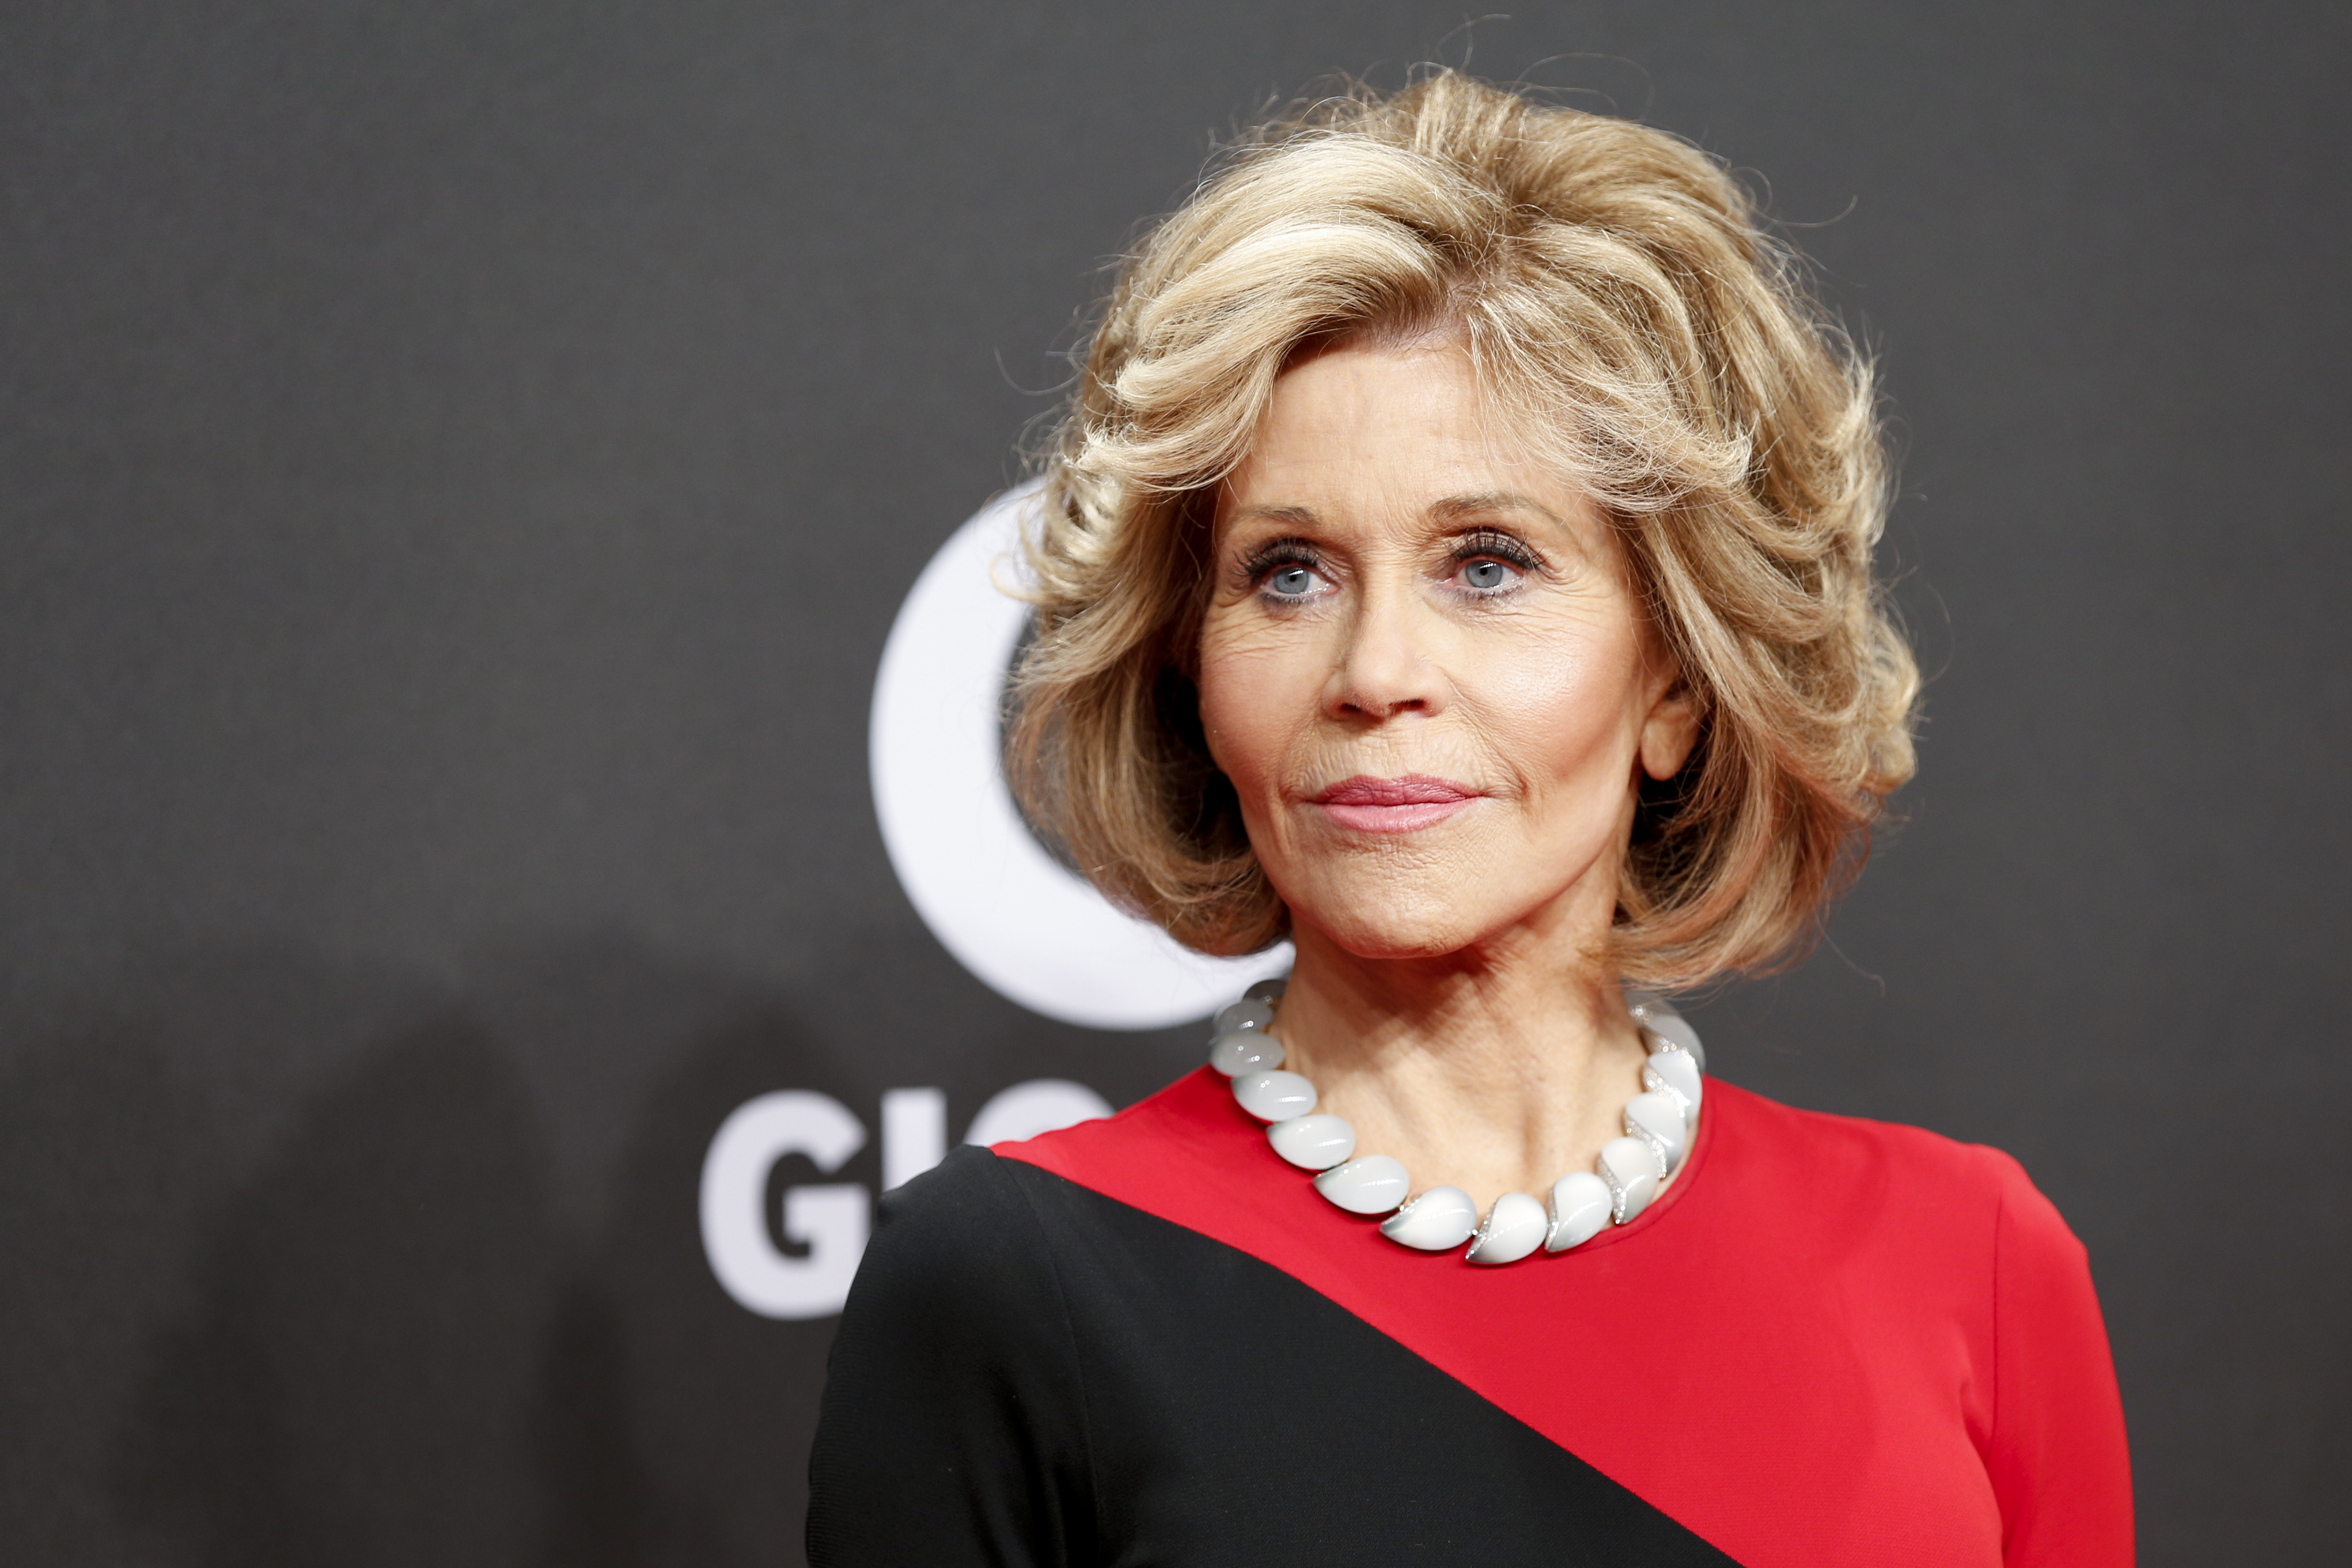 HAMBURG, GERMANY - MARCH 04: US actress Jane Fonda arrives for the Goldene Kamera on March 4, 2017 in Hamburg, Germany. (Photo by Isa Foltin/WireImage)